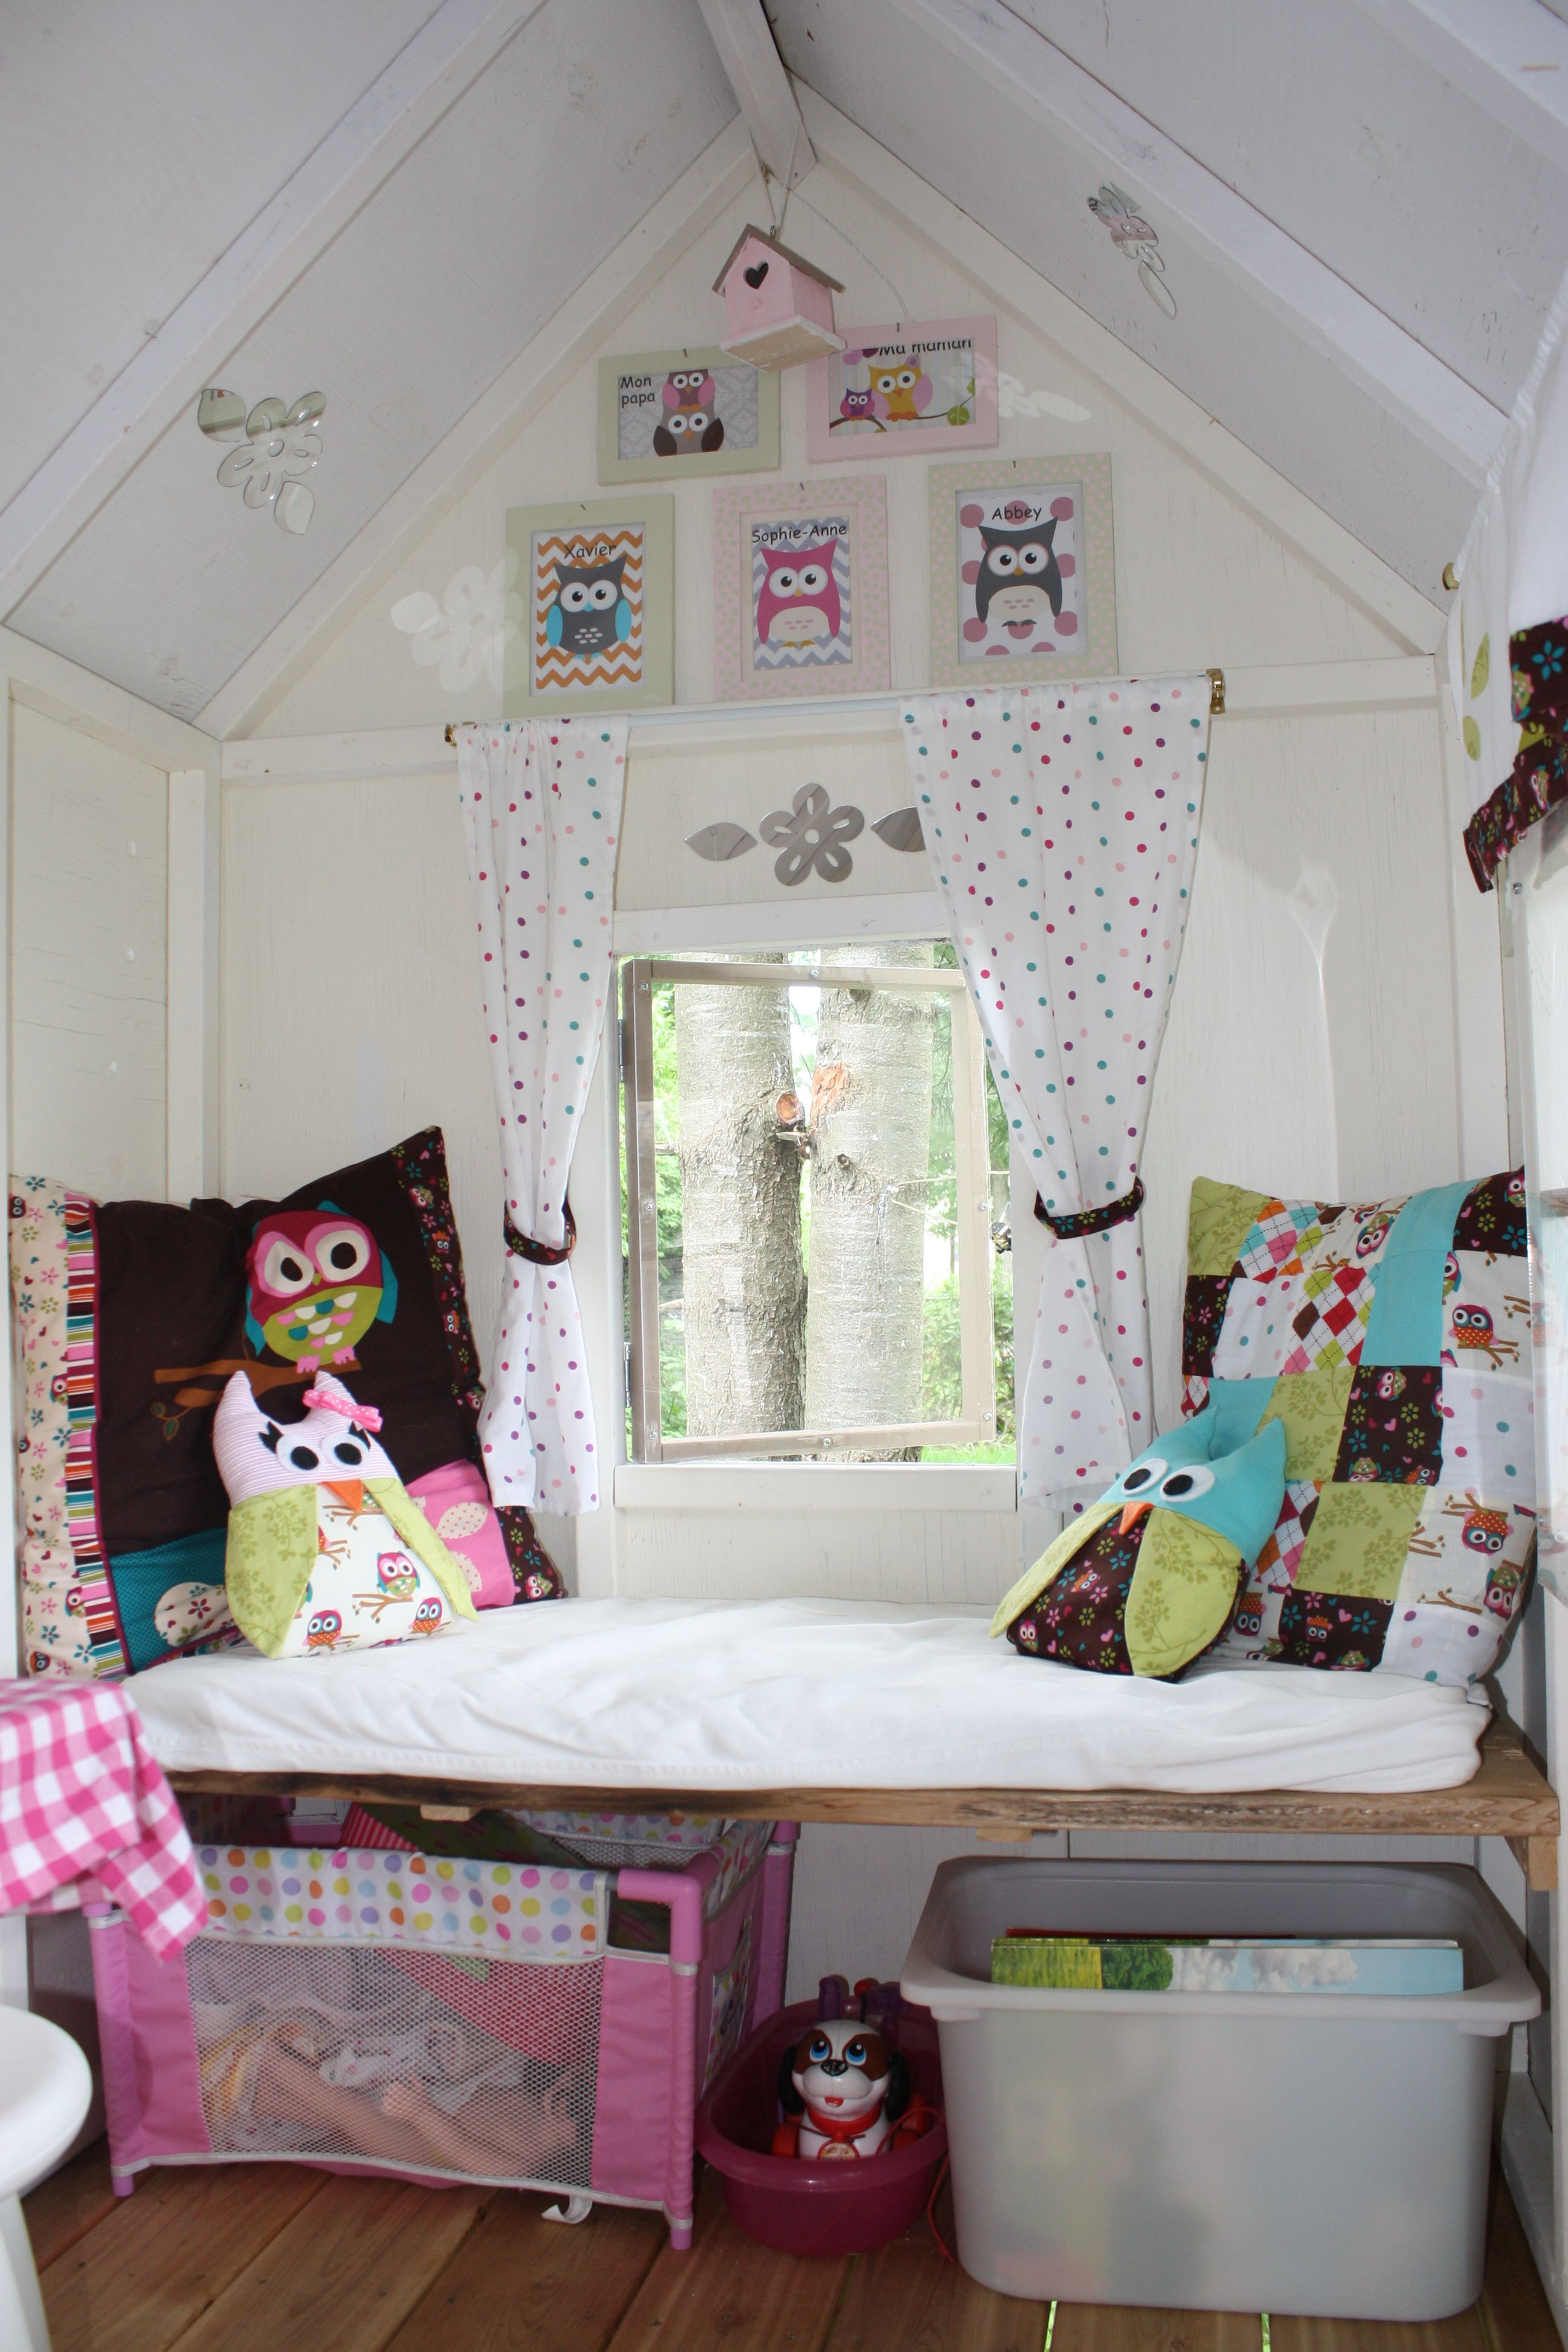 Playhouse interior decor bench cushions frames owls storage also best cubby house images garden tool inside rh pinterest